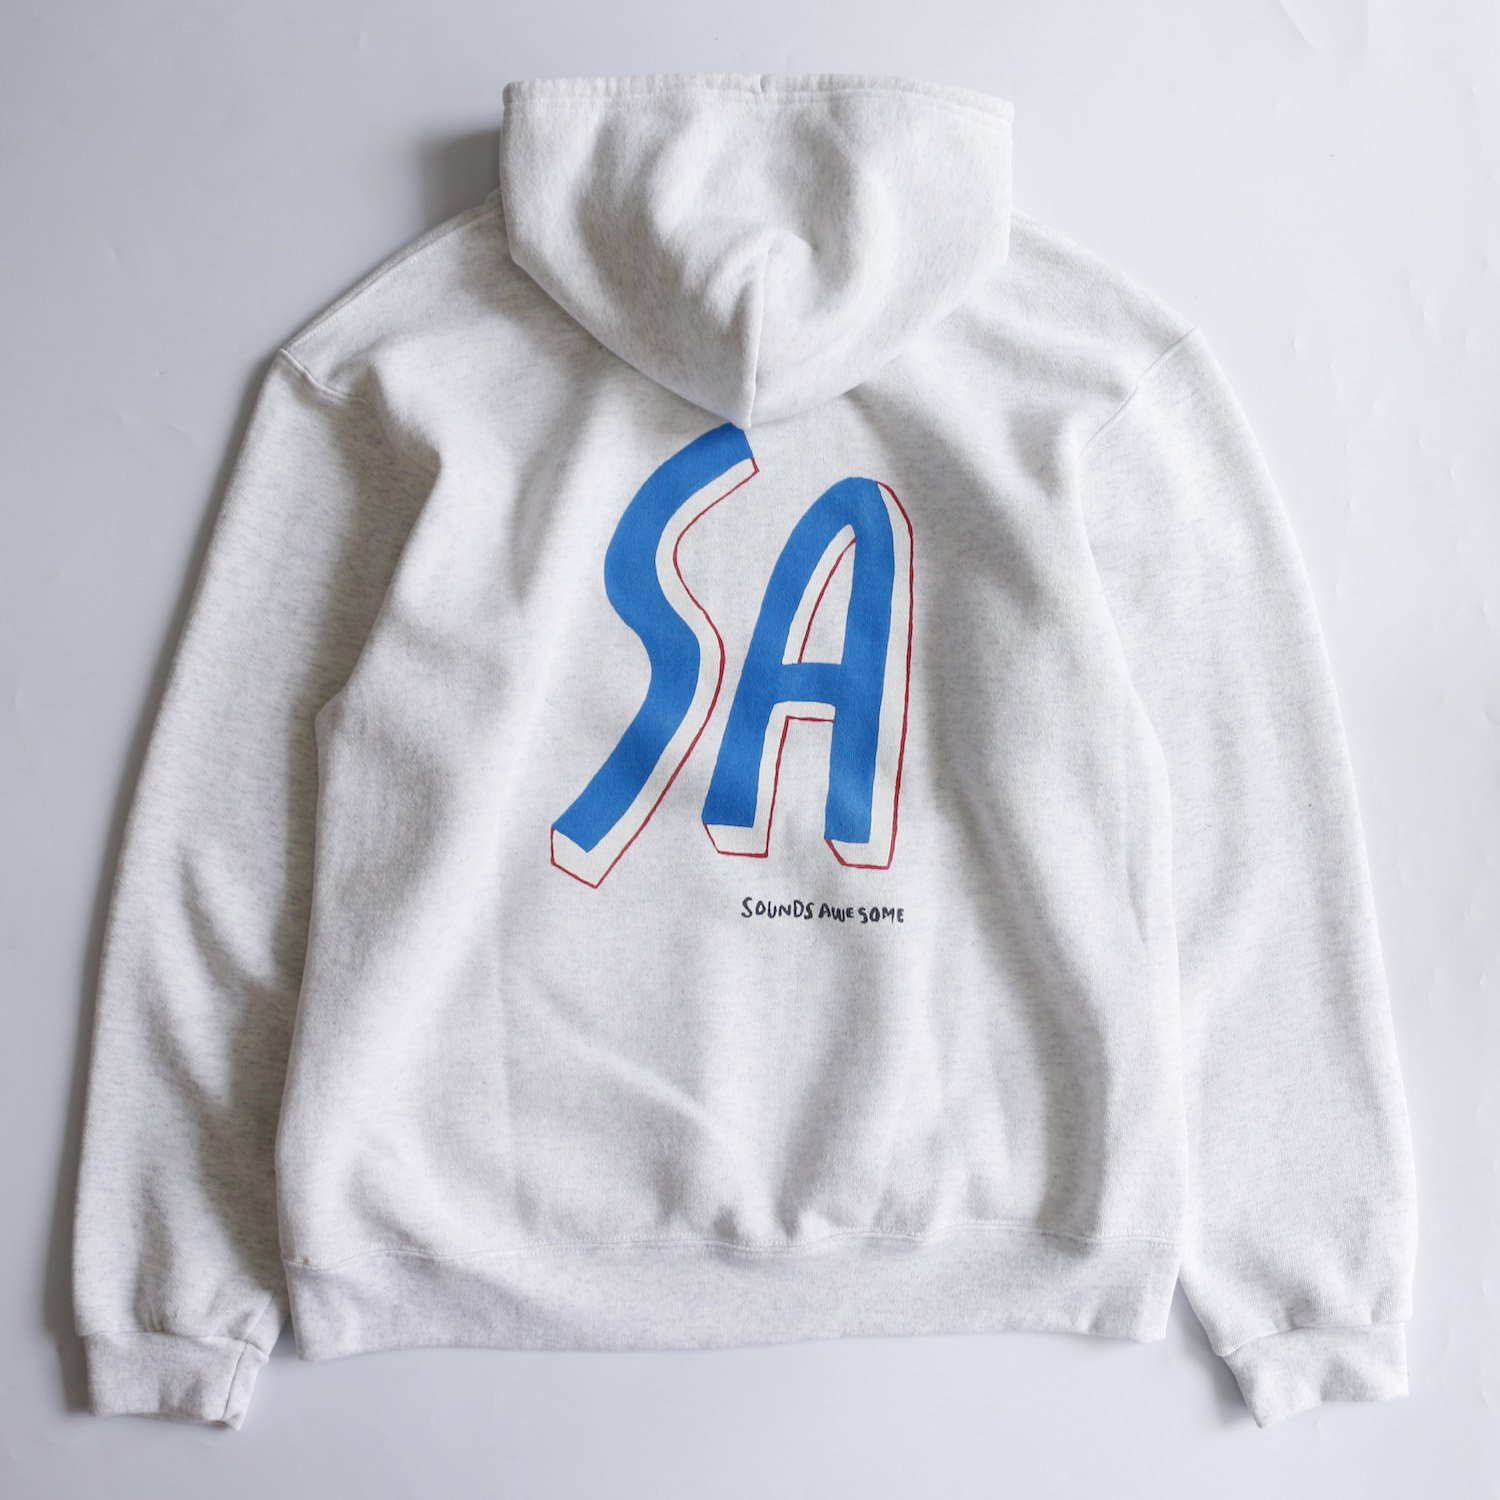 <img class='new_mark_img1' src='https://img.shop-pro.jp/img/new/icons8.gif' style='border:none;display:inline;margin:0px;padding:0px;width:auto;' />SOUNDS AWESOME / SA Logo printed Parka